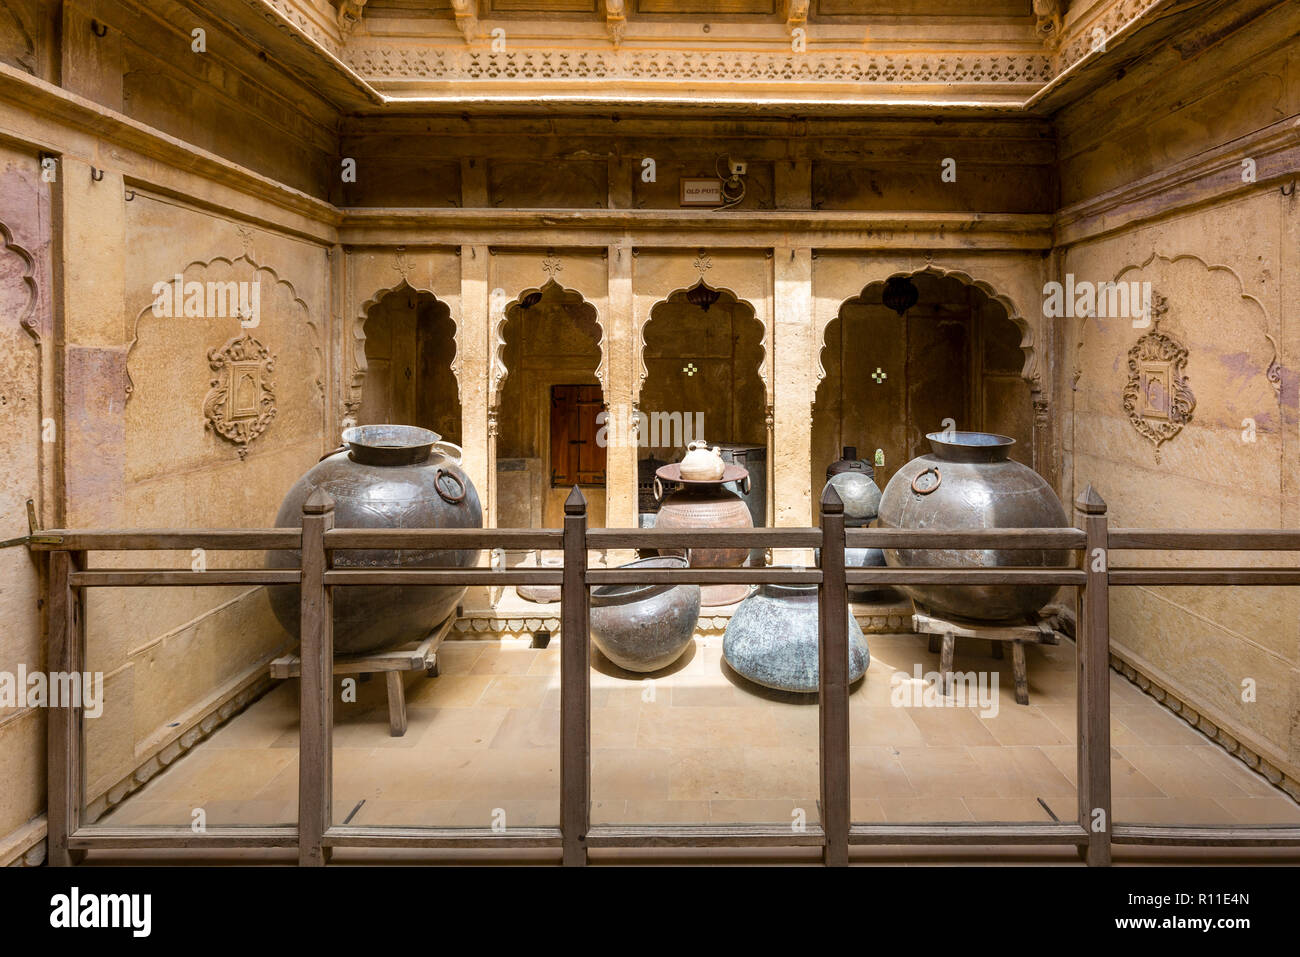 Display of antique kitchen utensils at the Patwon-ki-Haveli in the desert town of Jaisalmer in the state of Rajasthan in western India - Stock Image